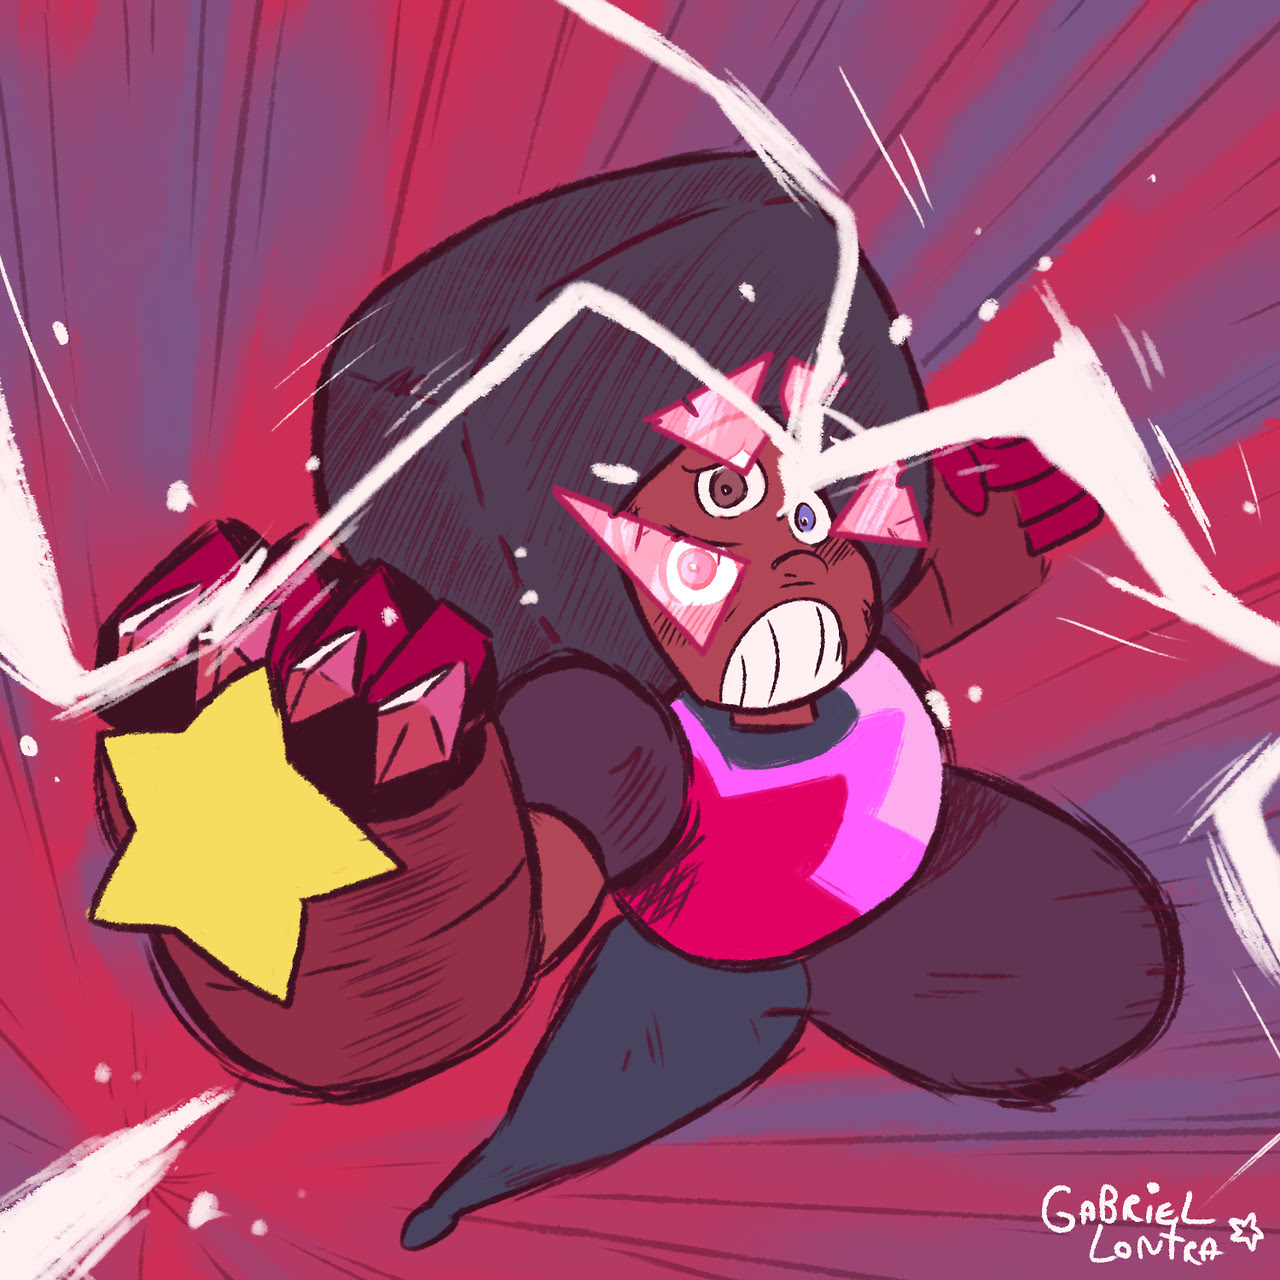 I did a Garnet! (also trying a new signature)